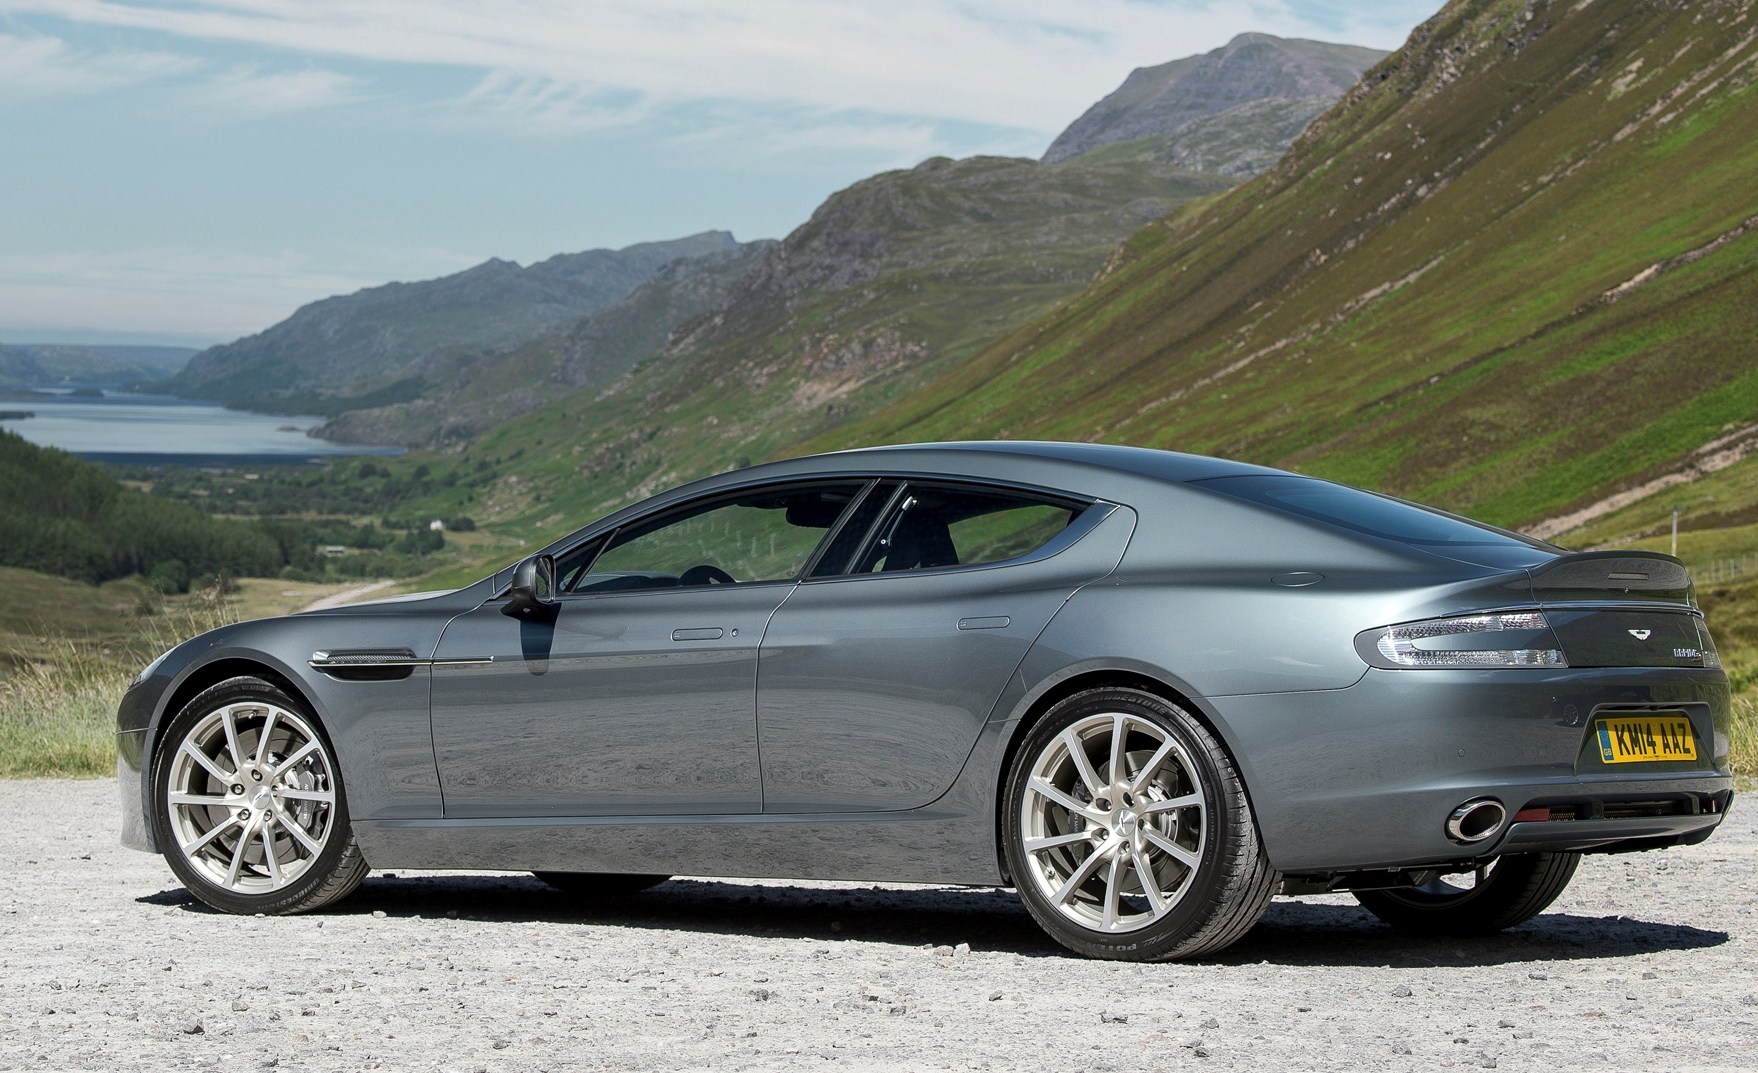 Aston Martin Price List Car Desktop Background - Aston martin price list